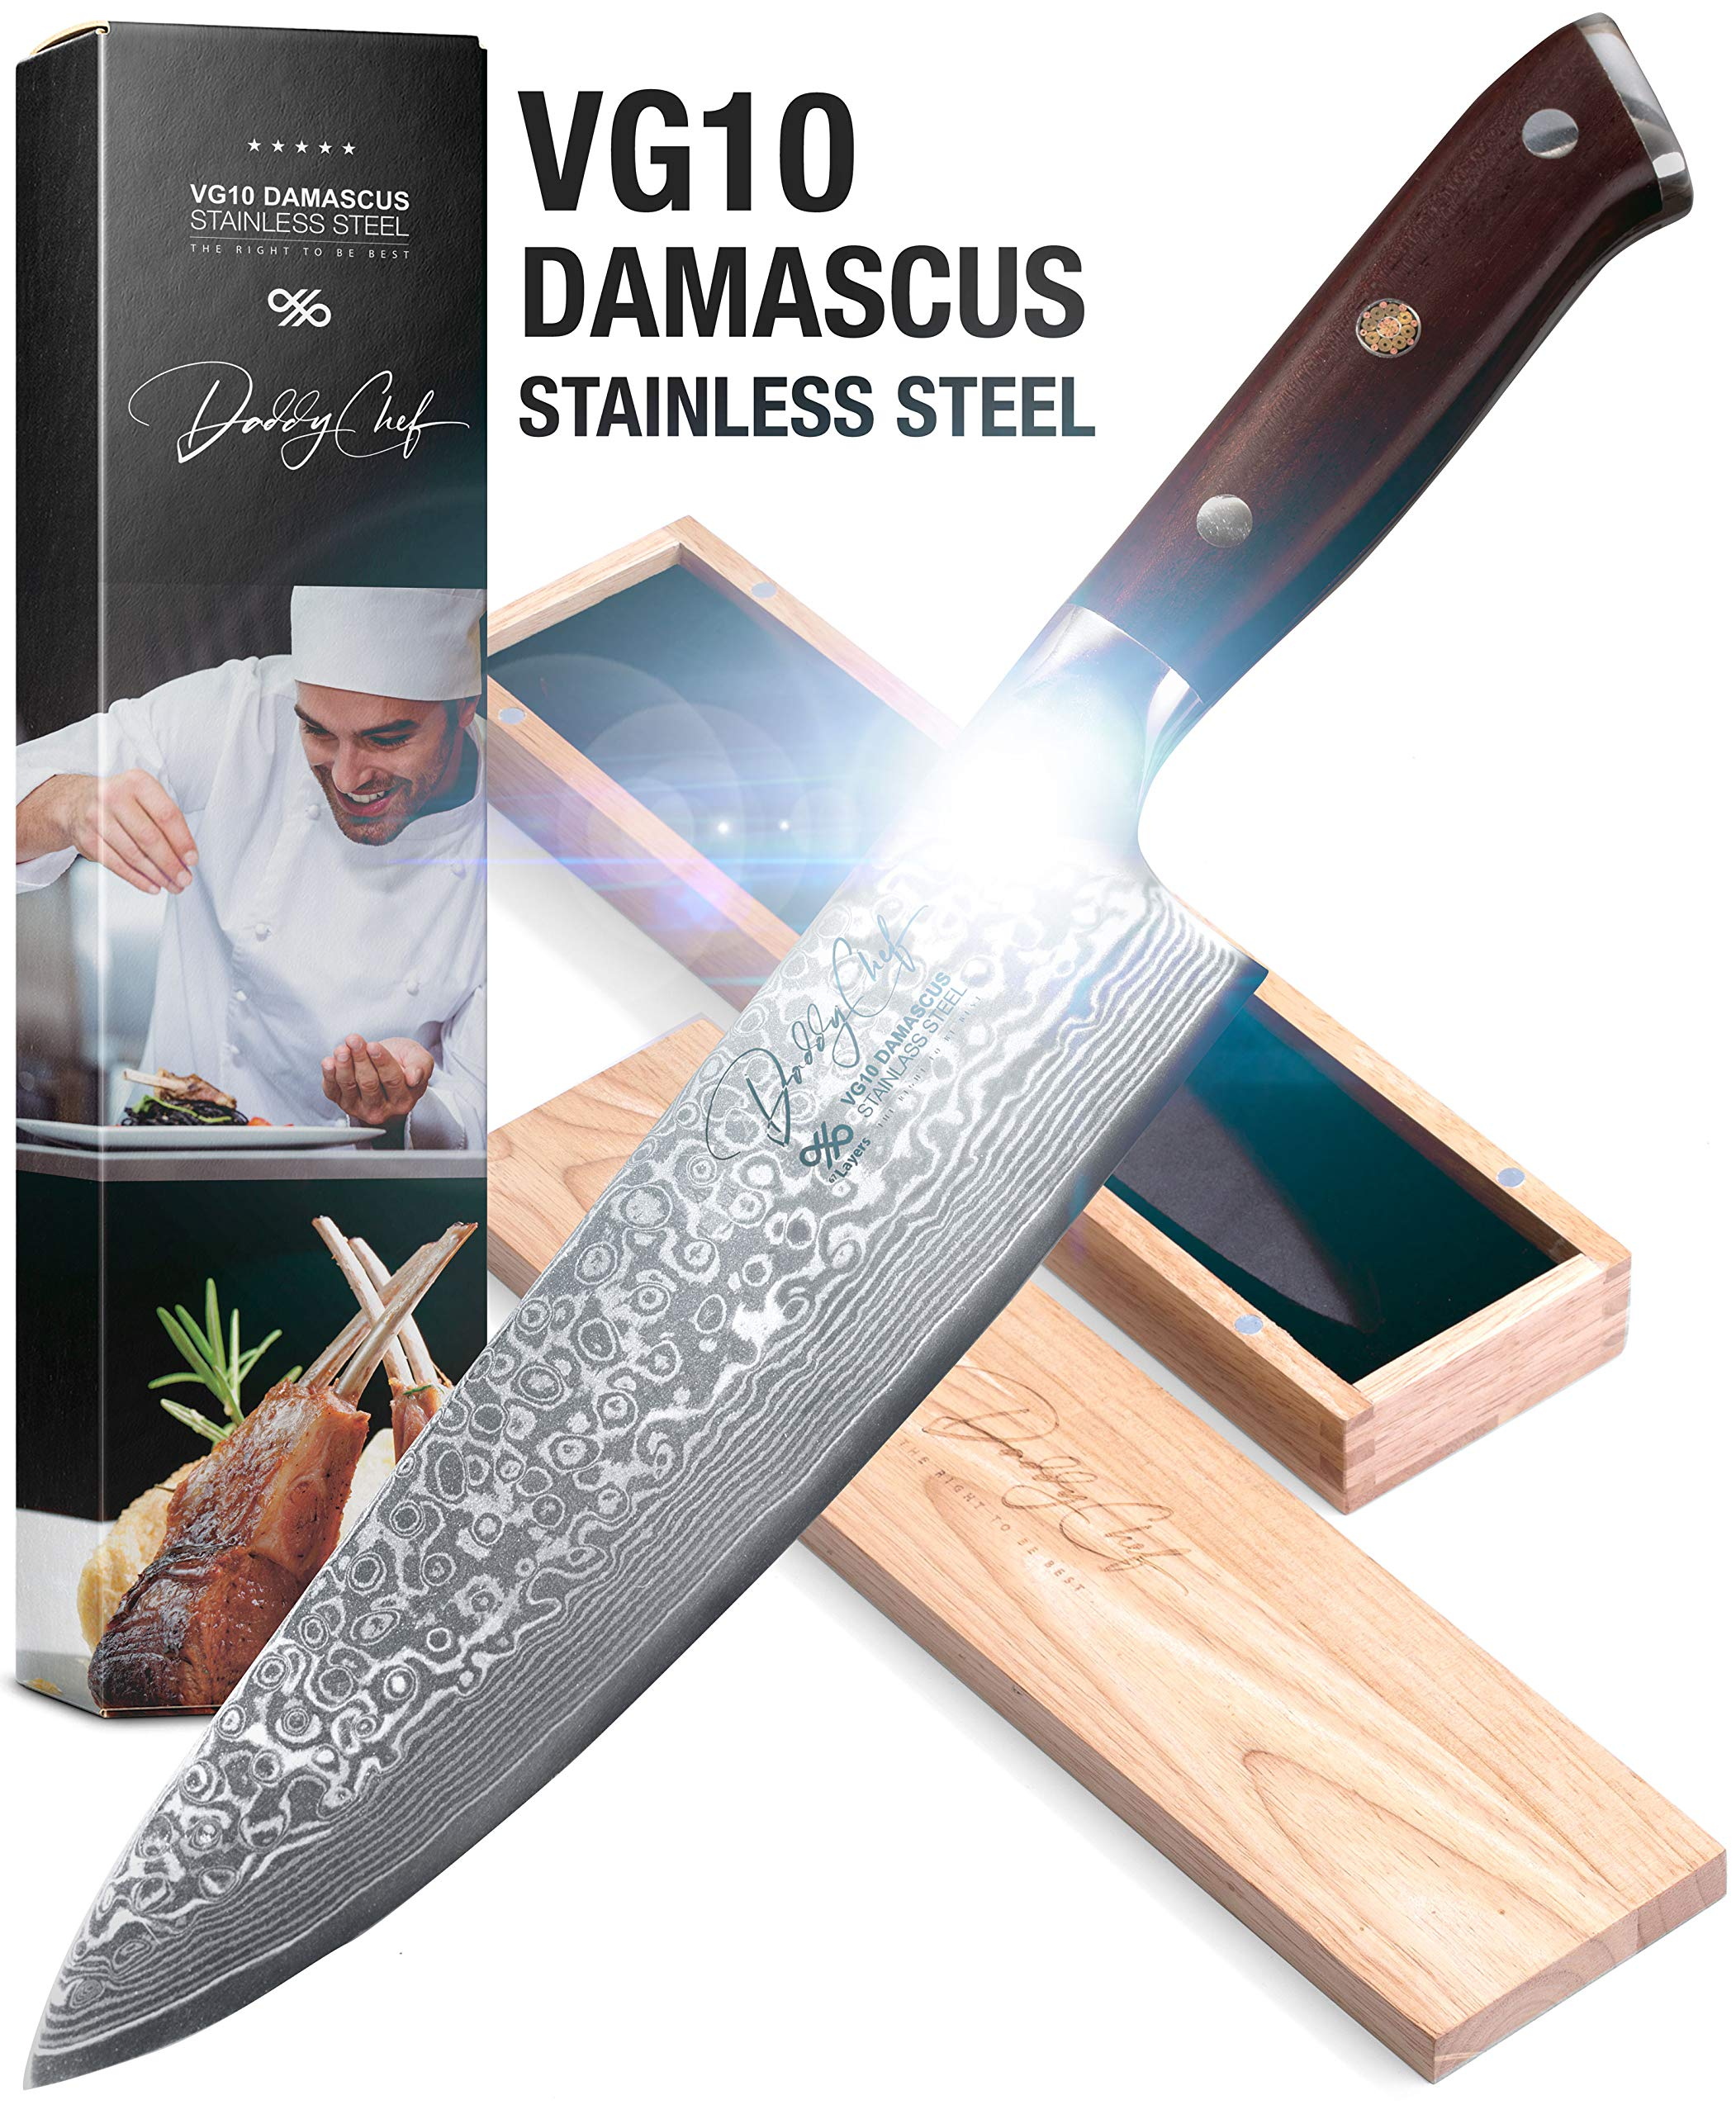 Daddy Chef Damascus Chef Knife - 8 inch Blade from Japanese VG10 67 Layer Stainless Steel - Professional and home kitchen chefs chopping carving knife - Forged Carbon - Ergonomic G10 Handle Knives